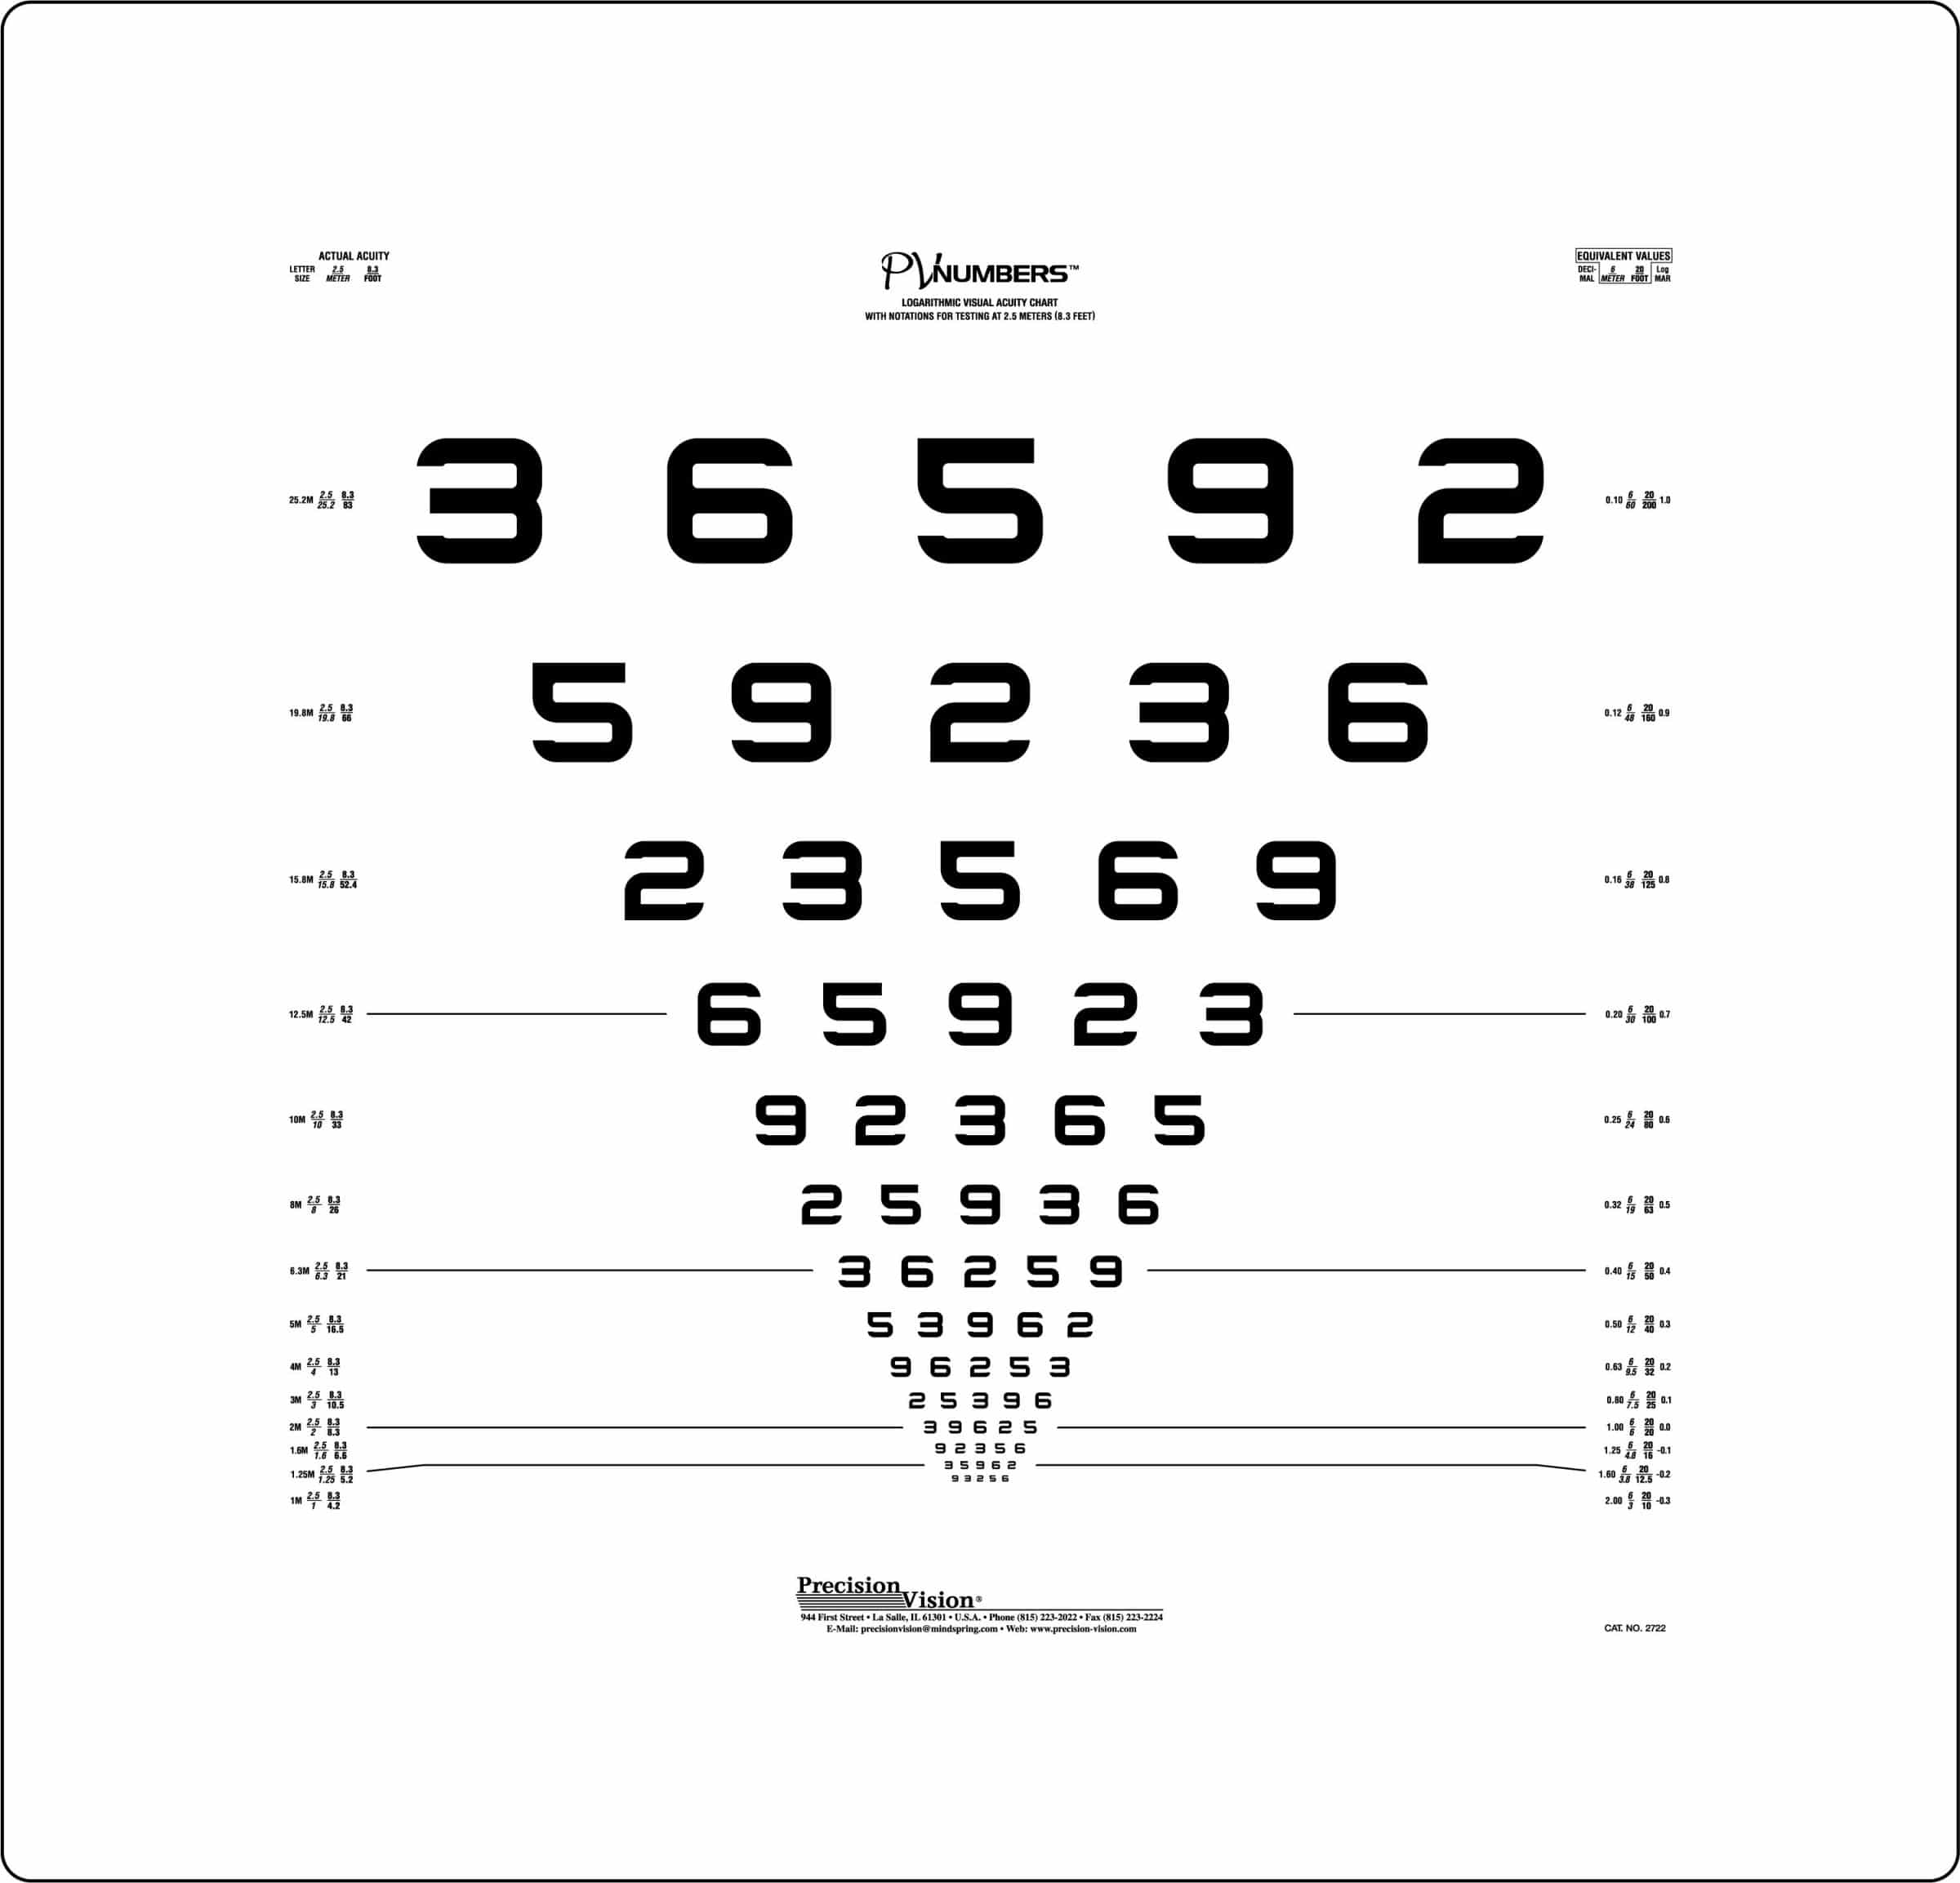 2 25 meter 65 83 ft high contrast eye charts precision vision 6500 add to cart geenschuldenfo Gallery